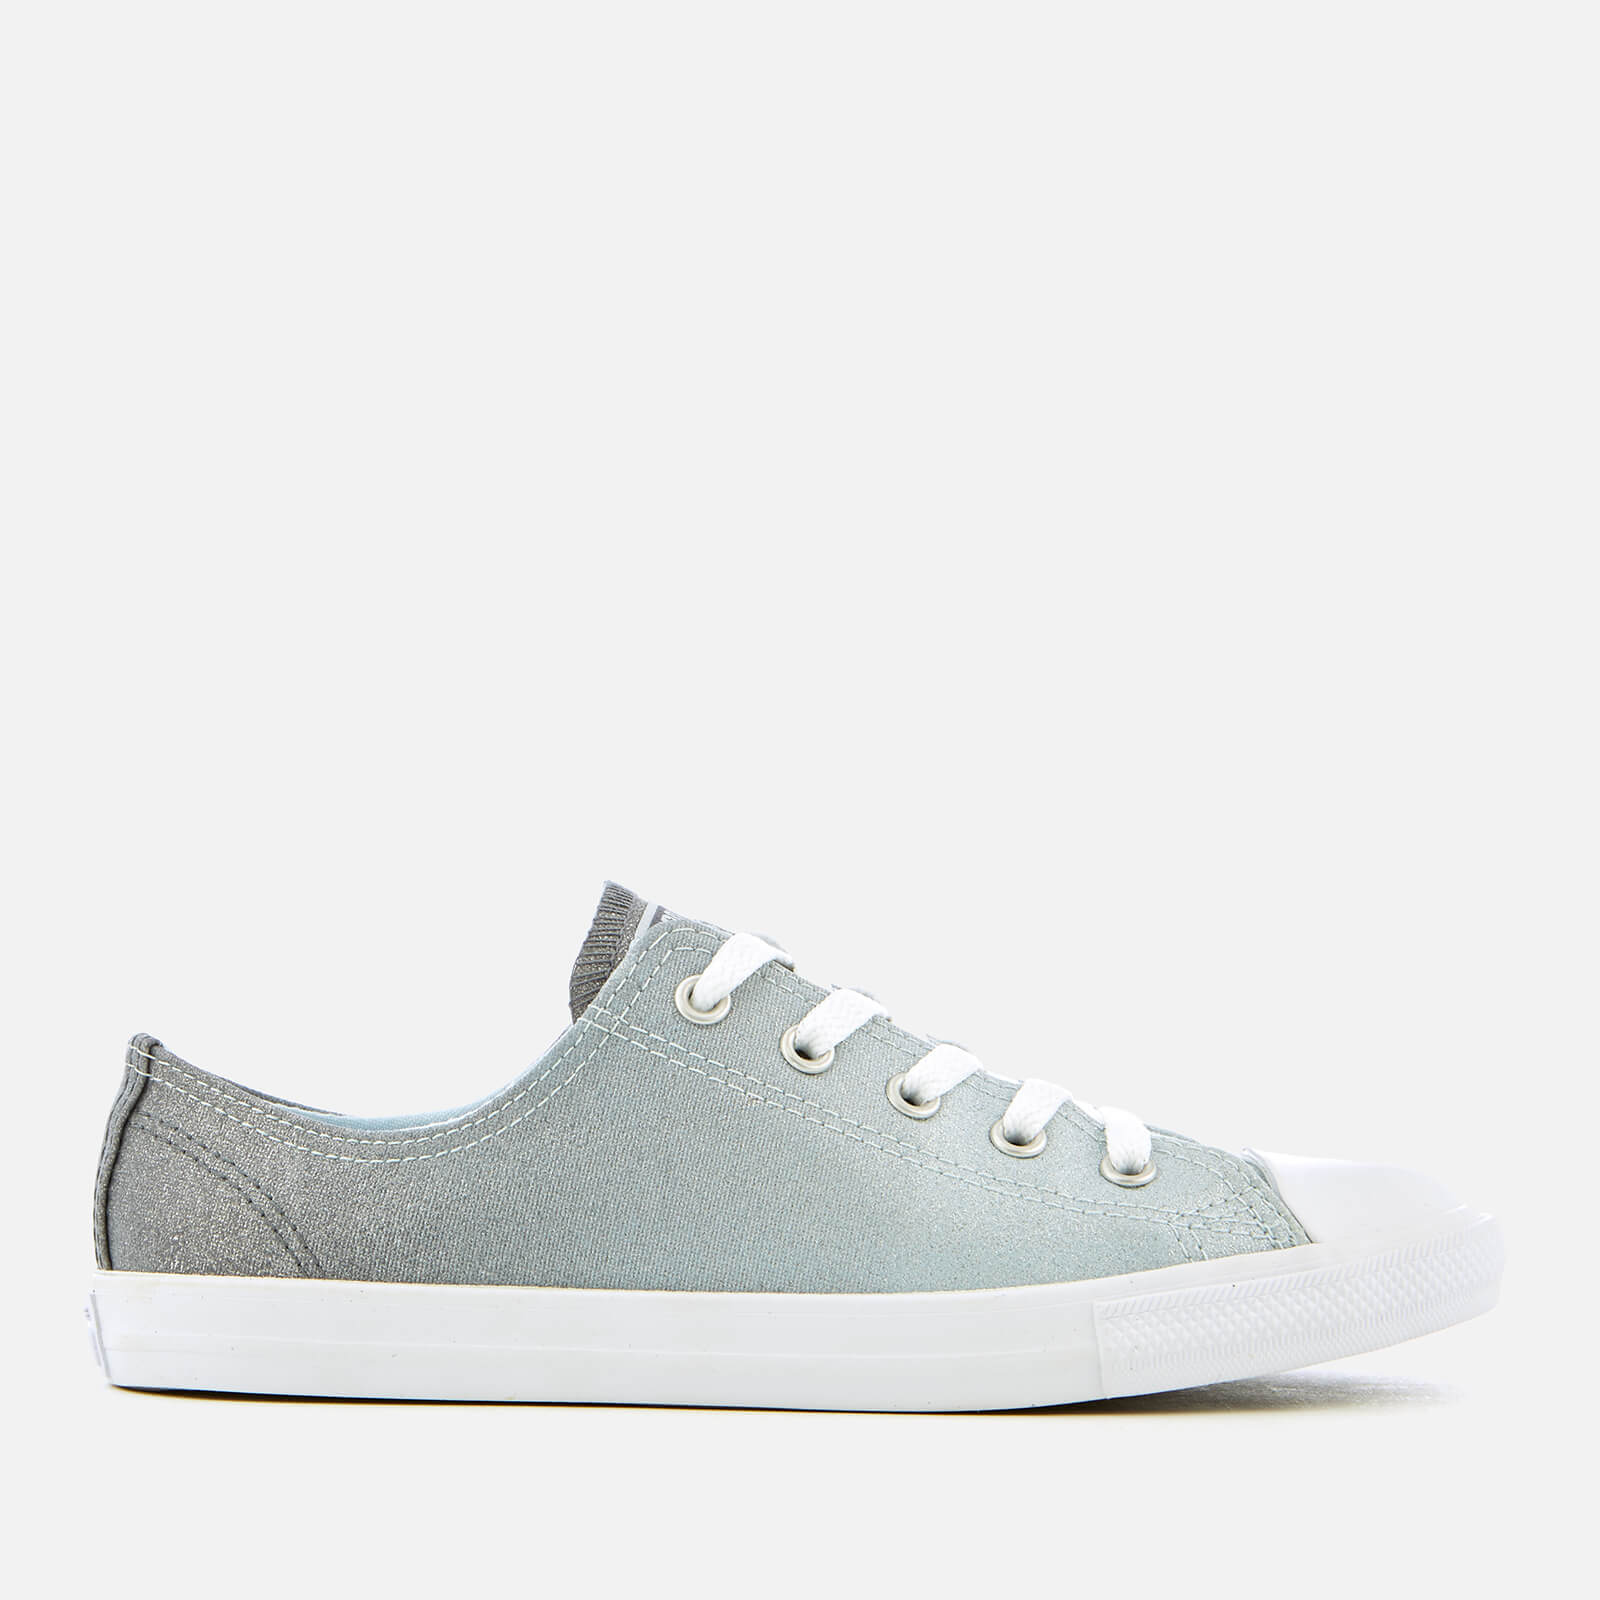 bd16d8f8d36ff2 Converse Women s Chuck Taylor All Star Dainty Ox Trainers - Blue Tint Light  Carbon Womens Footwear